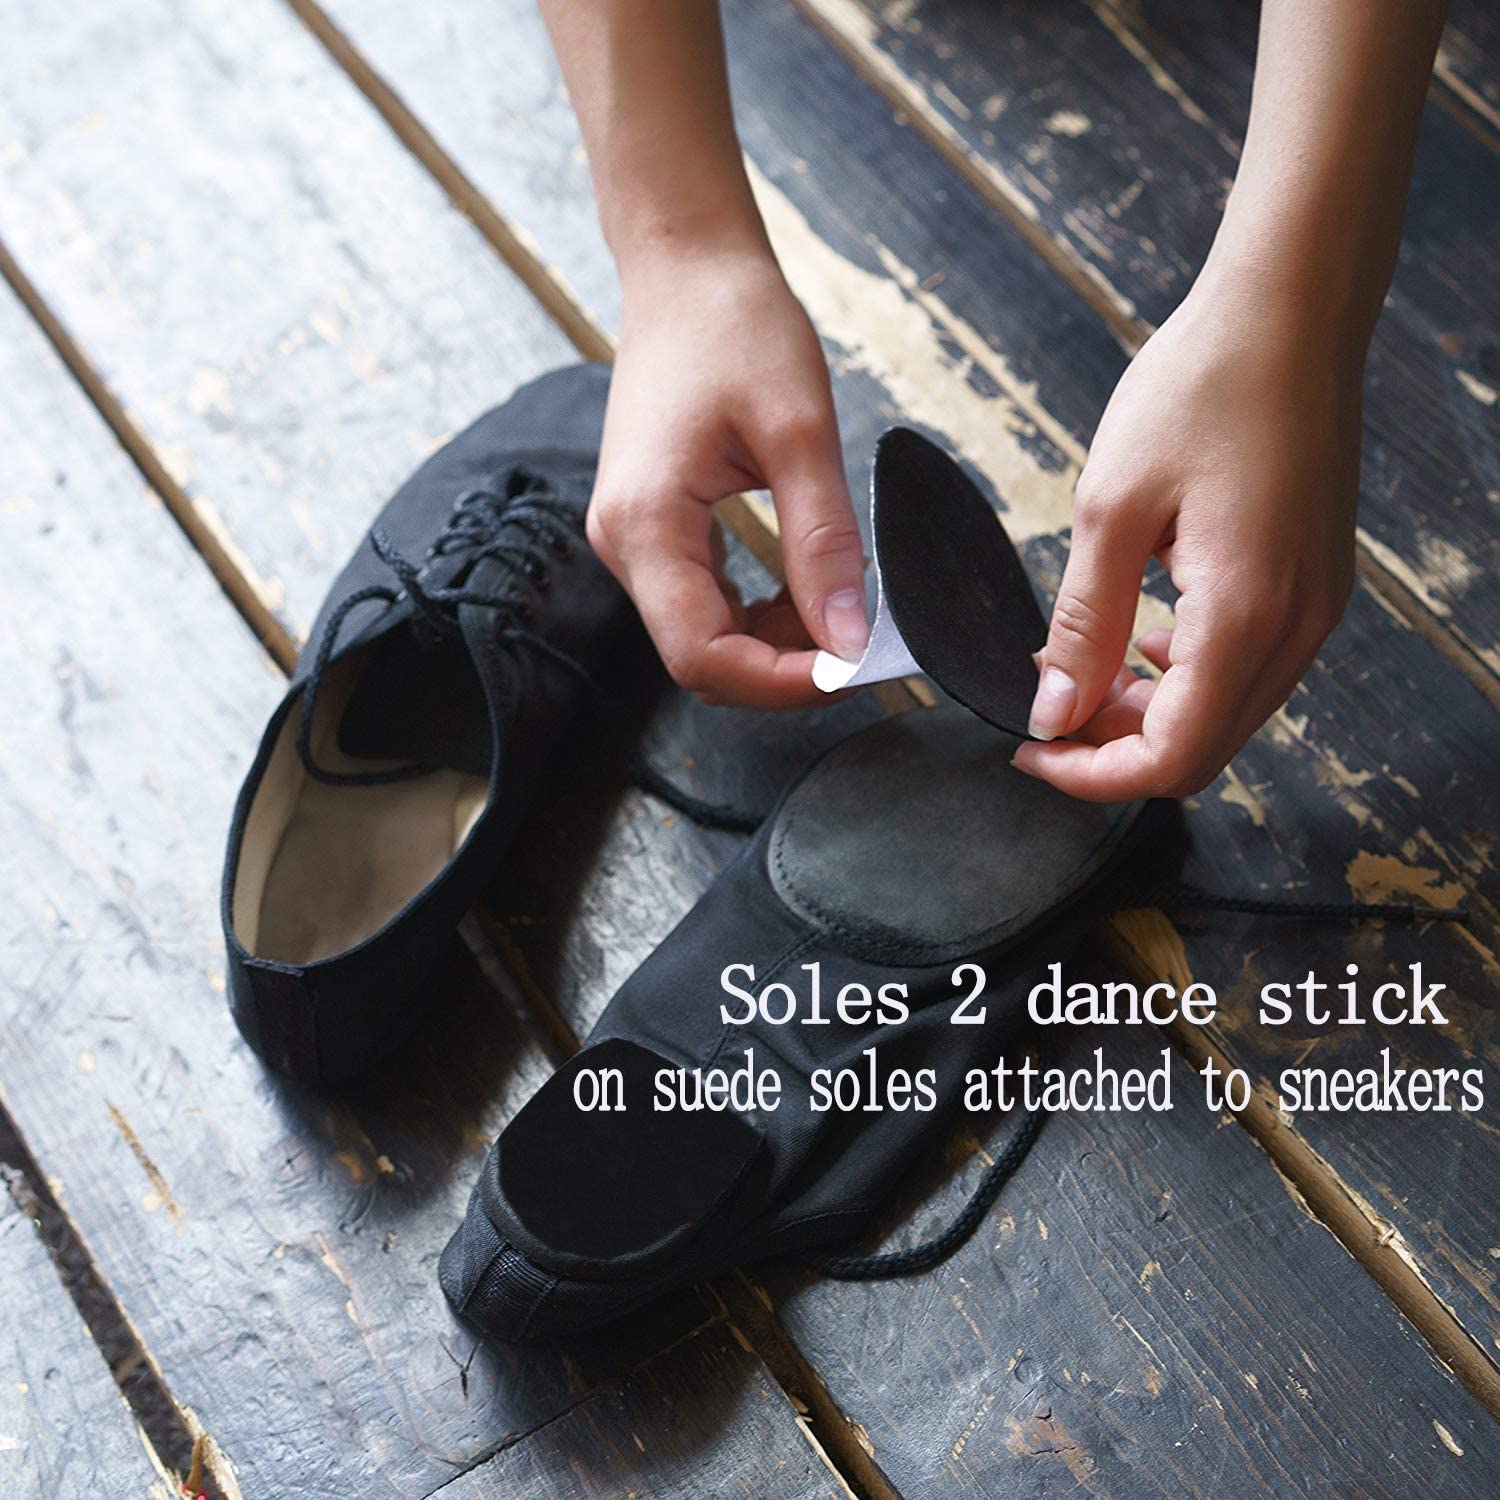 YAVOUN Stick-on Suede Friction-reducing dance soles for ,Easy pivoting and sliding on sticky indoor dance floors,Self-Adhesive Non-slip High-Heeled Shoes Sole Protector Pads Sticker